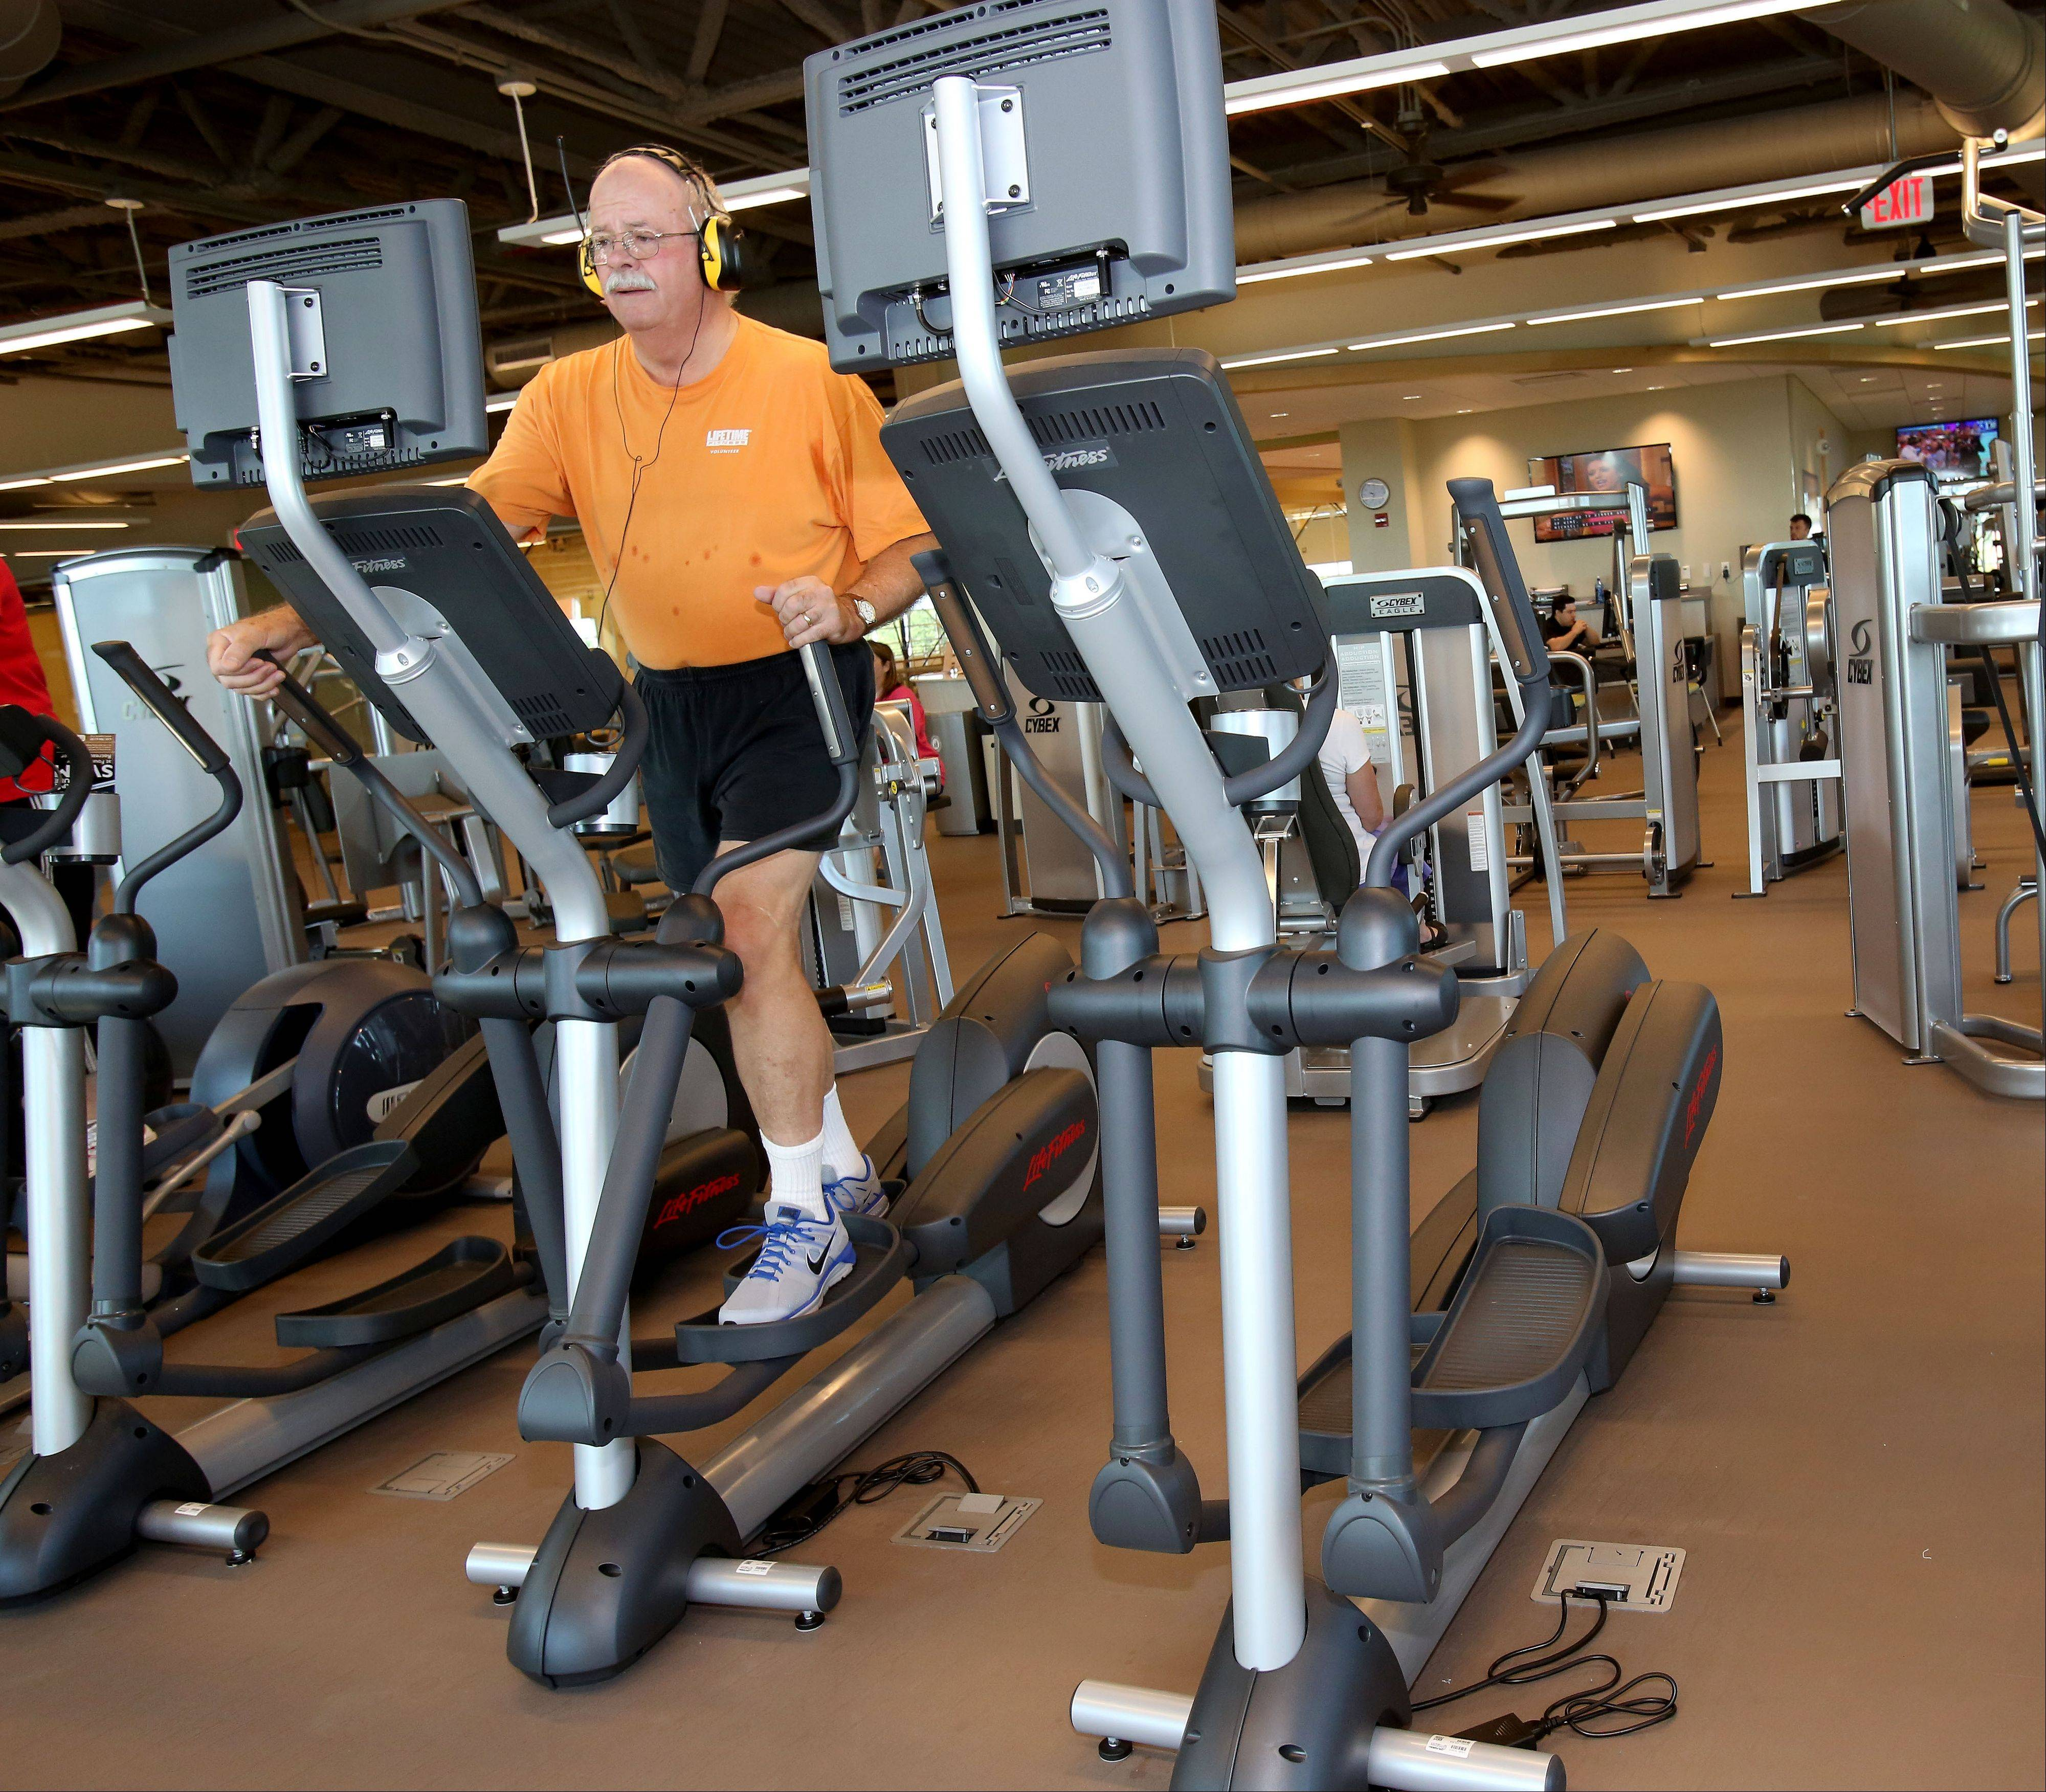 Mike Downey of Carol Stream, a part-time park district employee, uses an elliptical machine at the new Fountain View Recreation Center in Carol Stream.